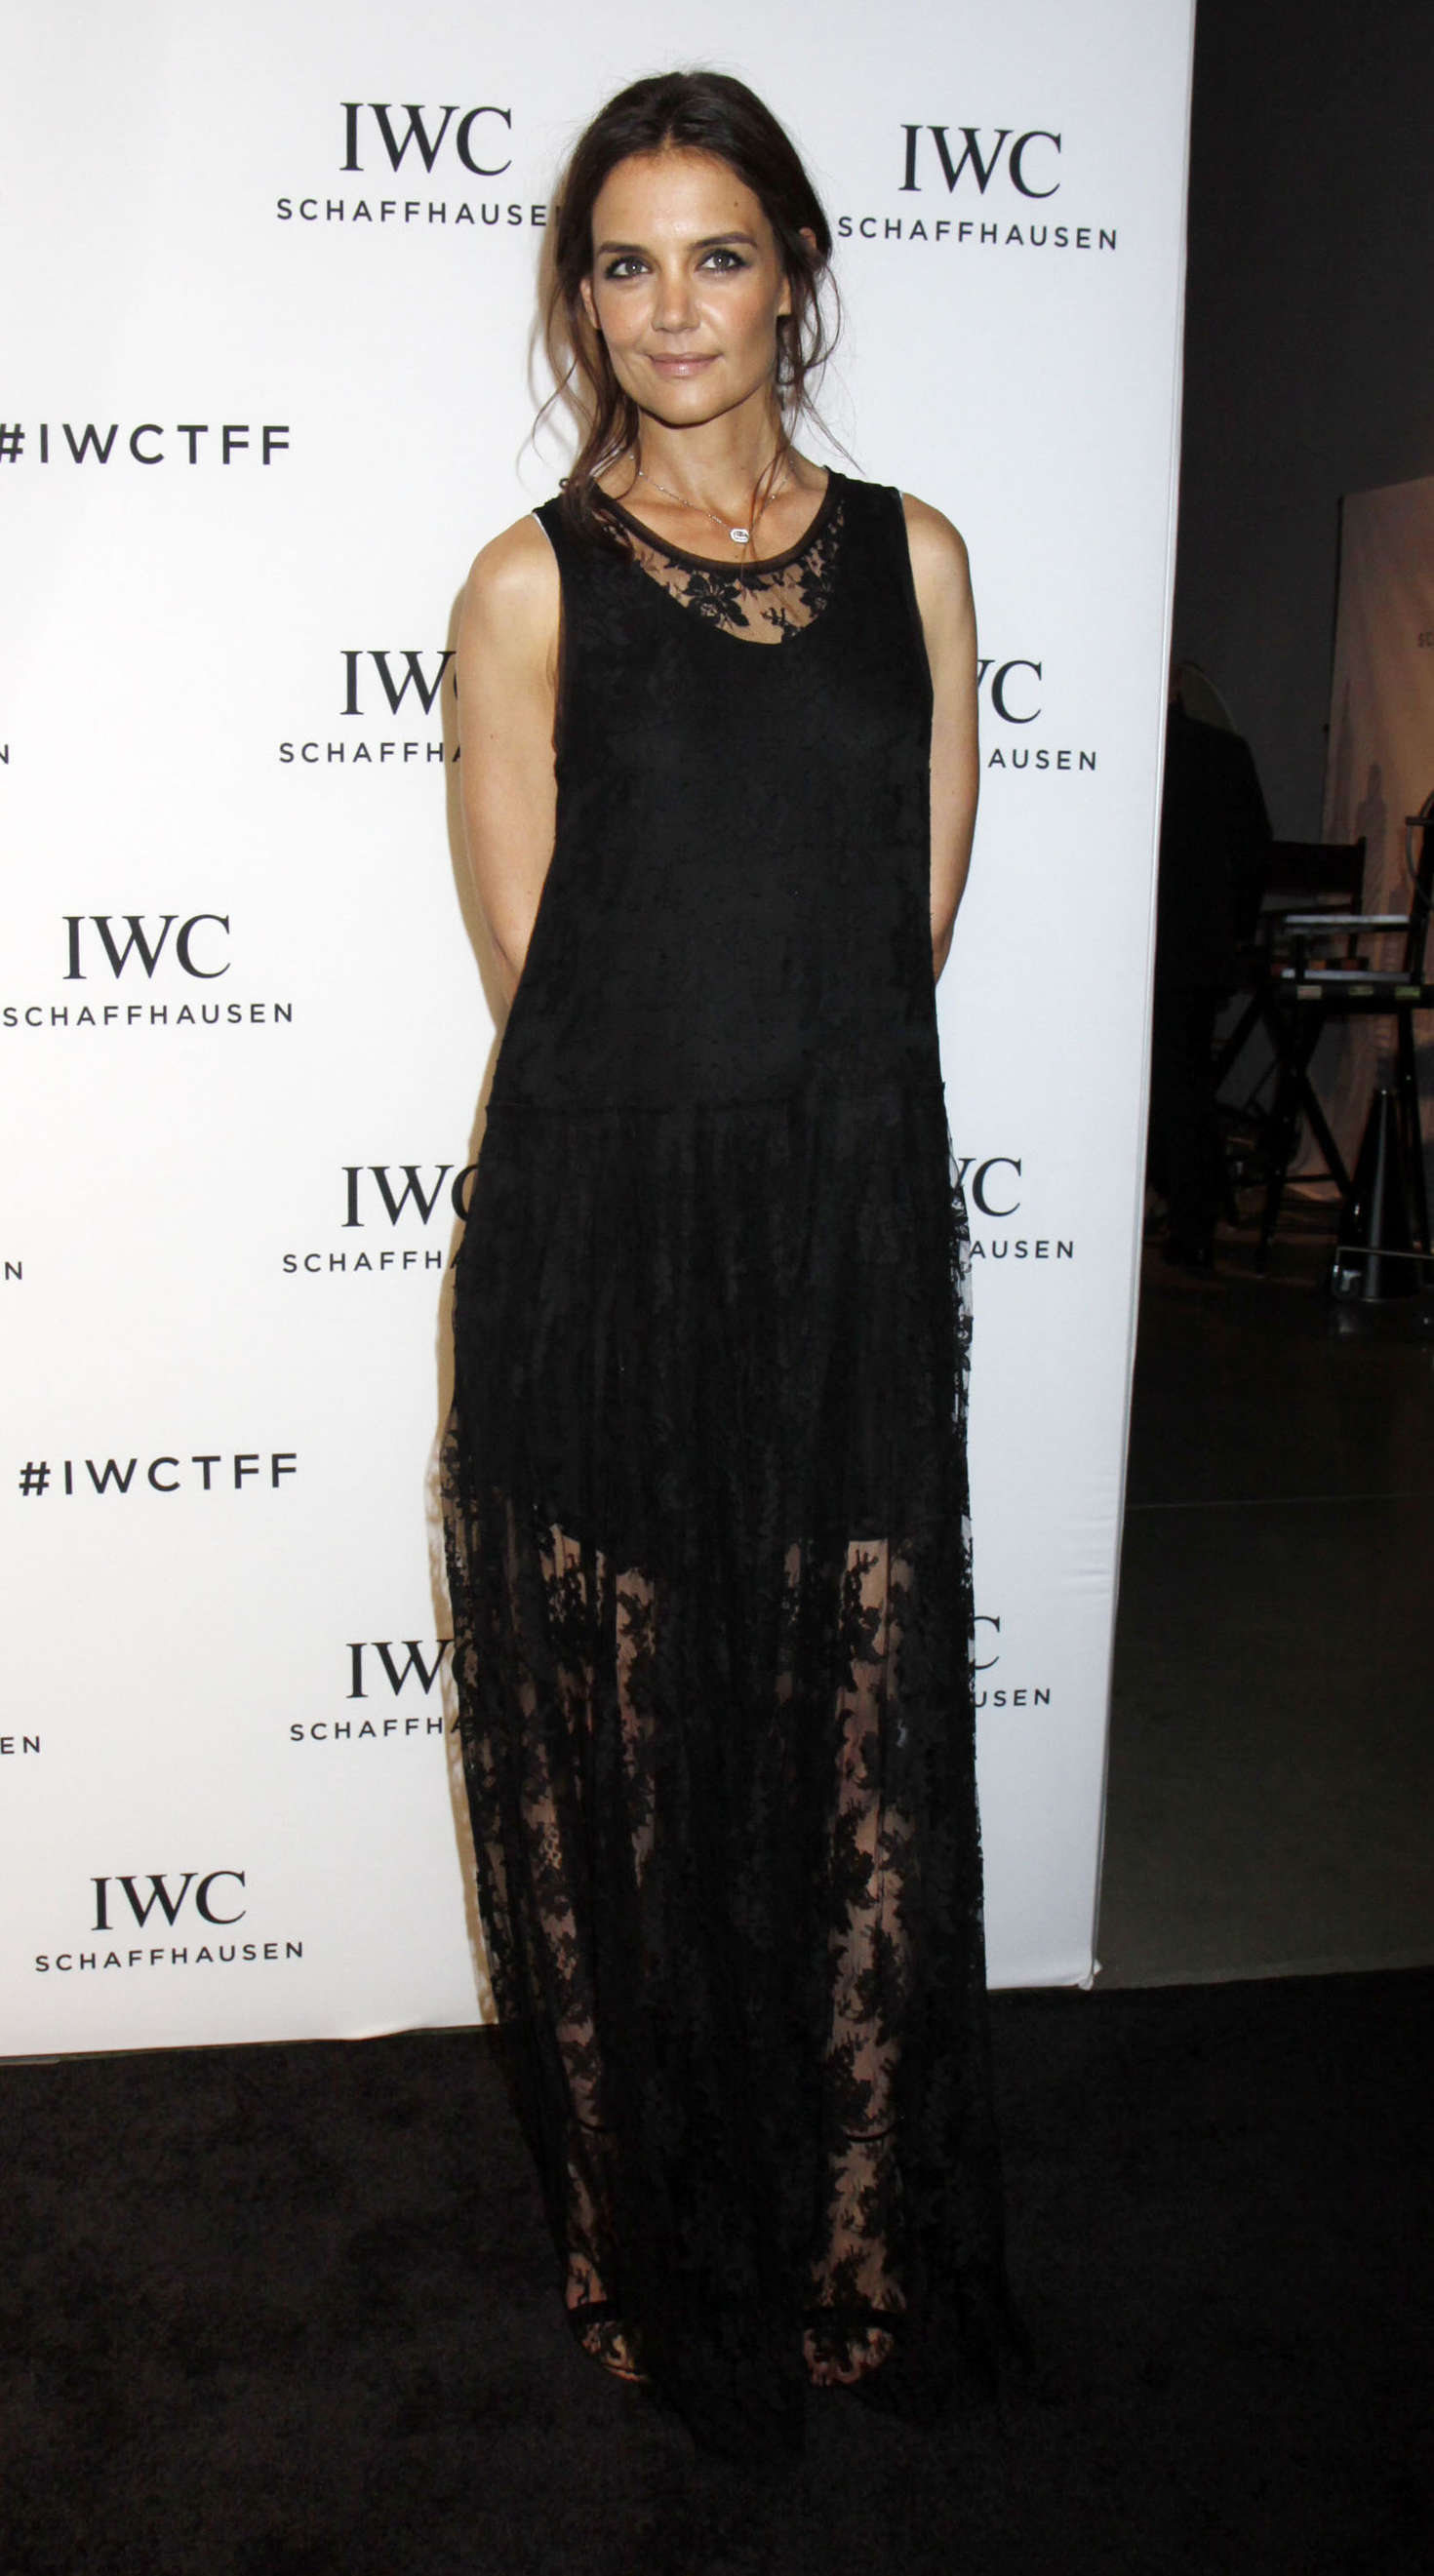 Katie Holmes 2016 : Katie Holmes: For The Love Of Cinema Dinner at Tribeca Film Fest 2016 -05